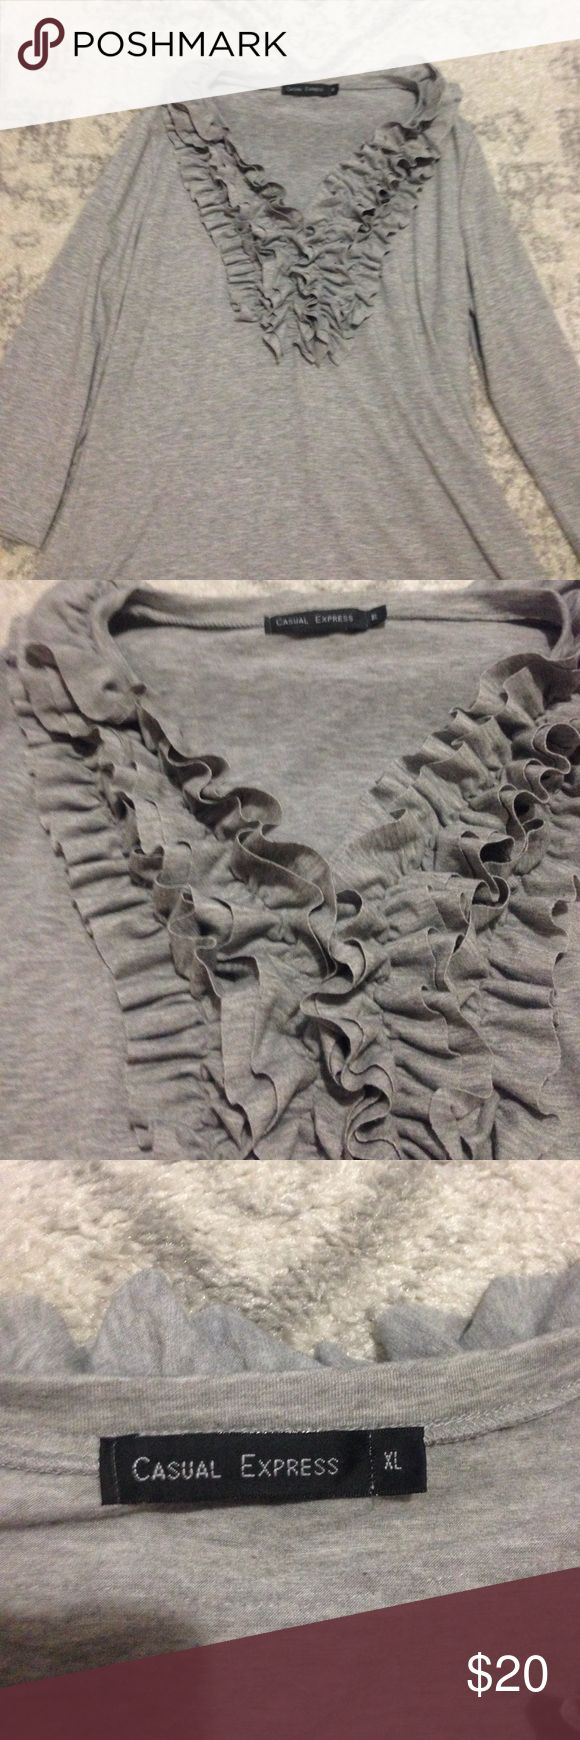 Casual Express XL Gray/Grey Ruffle V-Neck Top! Casual Express XL Gray/Grey Women's Top. V-Neck. Ruffles around the neck and at the top of the back (please see pictures). 3/4 sleeves. Excellent used condition, barely worn if at all. Non-smoking household. Check out my ratings and buy with confidence! Thanks for stopping by my closet! Casual Express Tops Tees - Long Sleeve